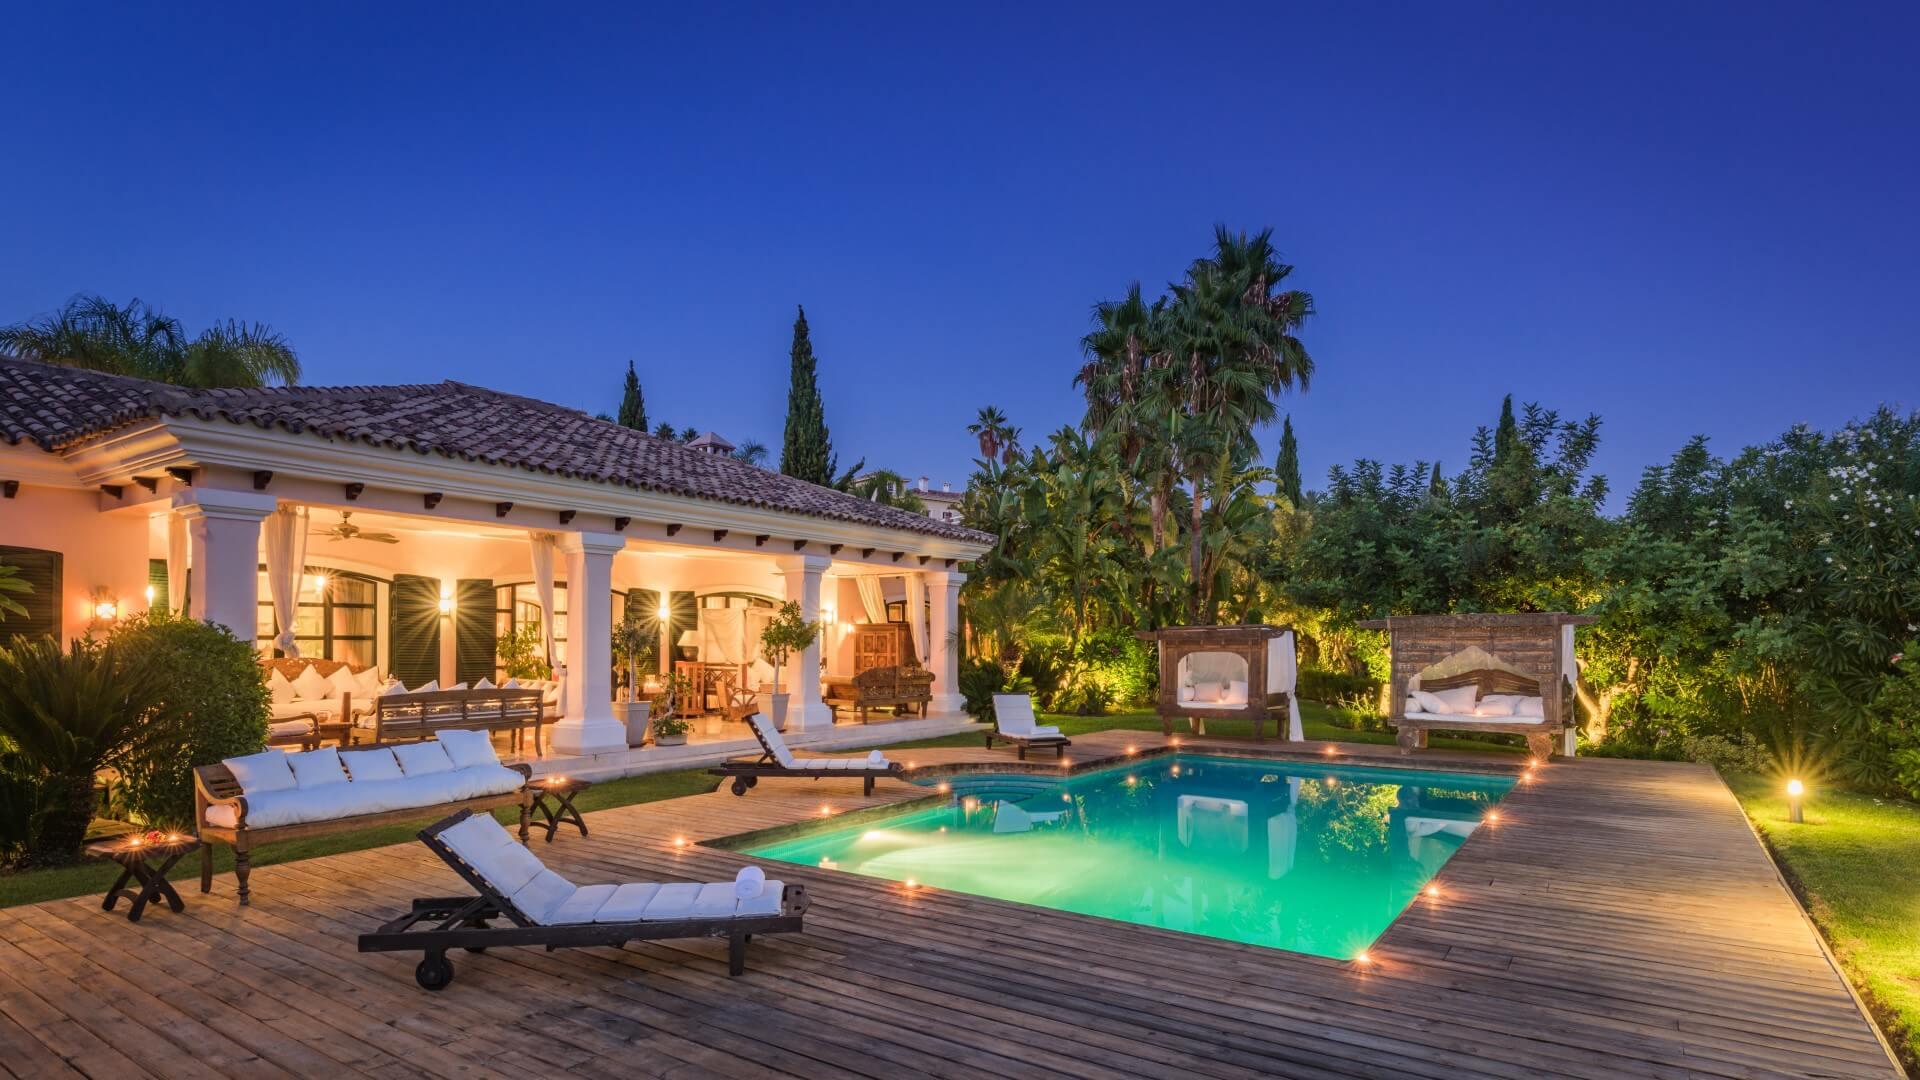 Luxury country living in Marbella